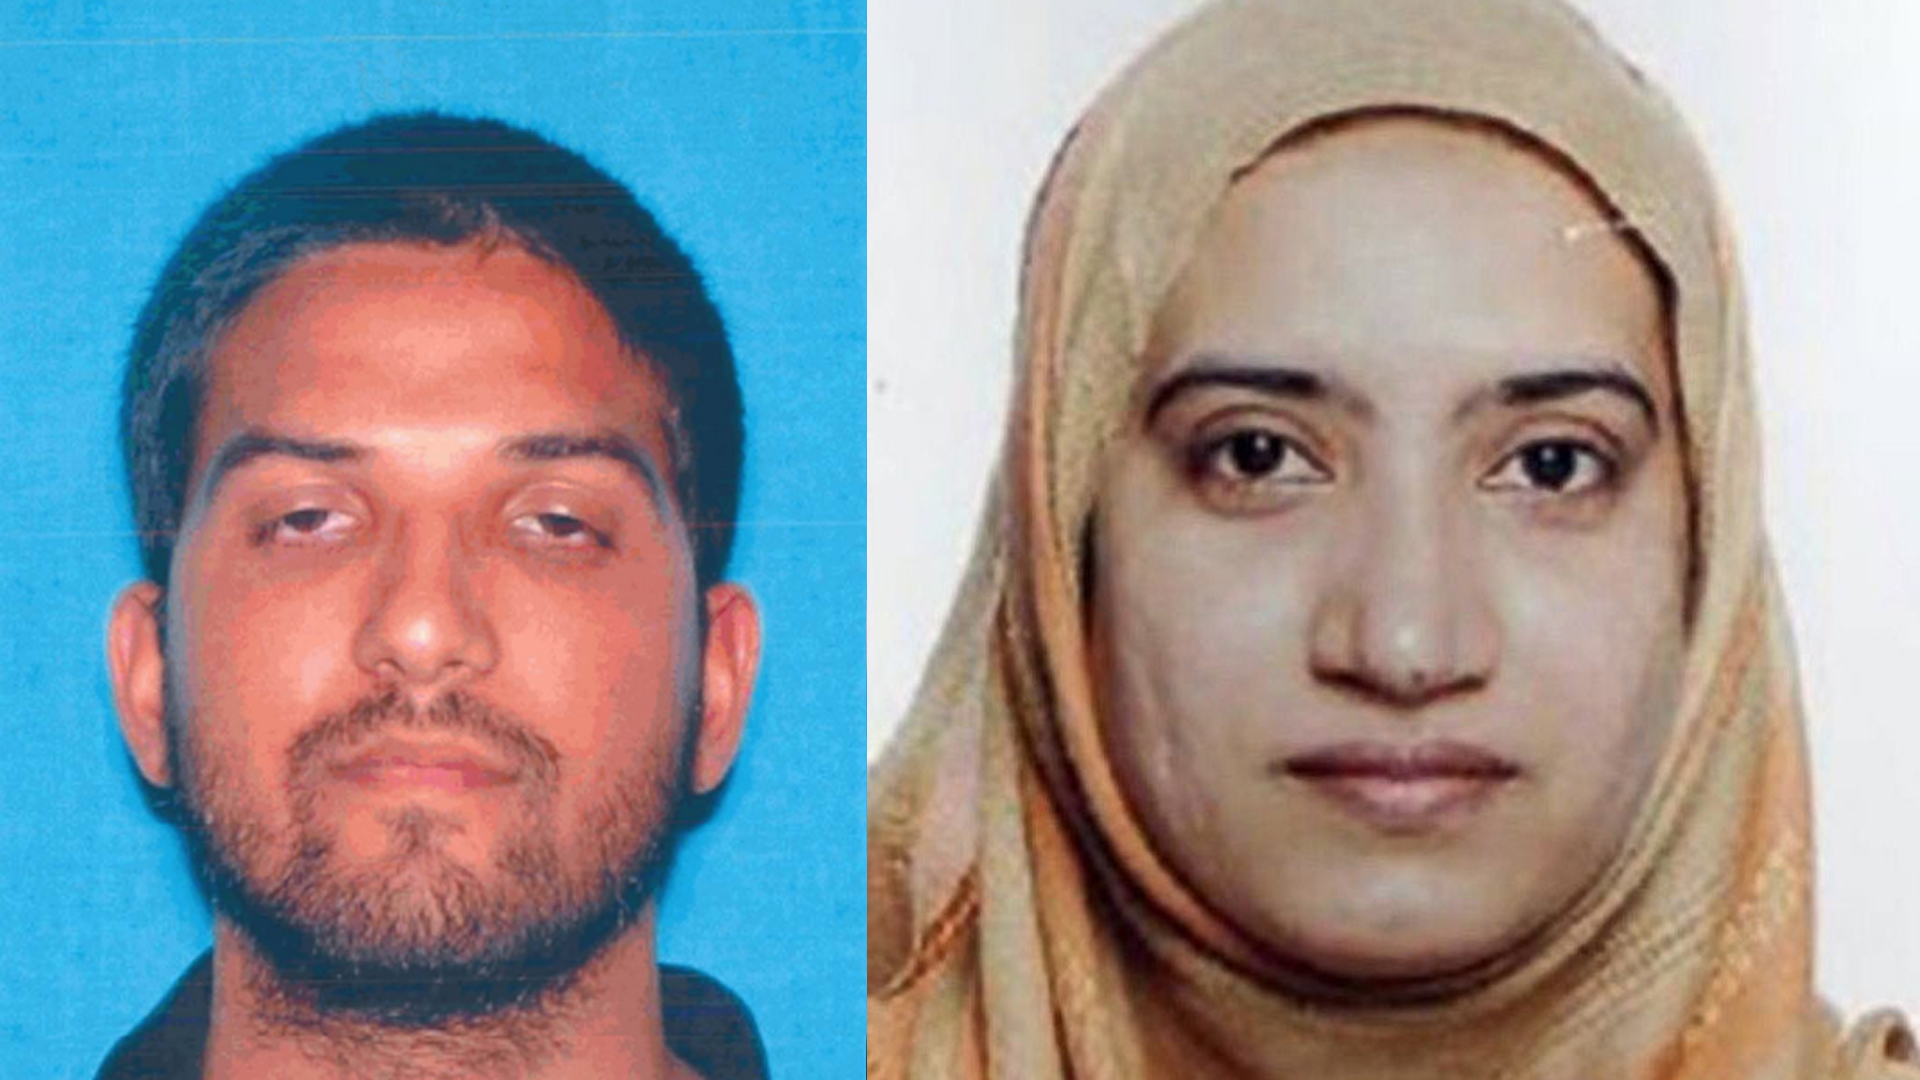 The attackers in a deadly mass shooting in San Bernardino on Dec. 2, 2015, are pictured. Syed Farook, left, is seen in a photo released by the California DMV, and Tashfeen Malik, right, is seen in a photo released by the FBI.